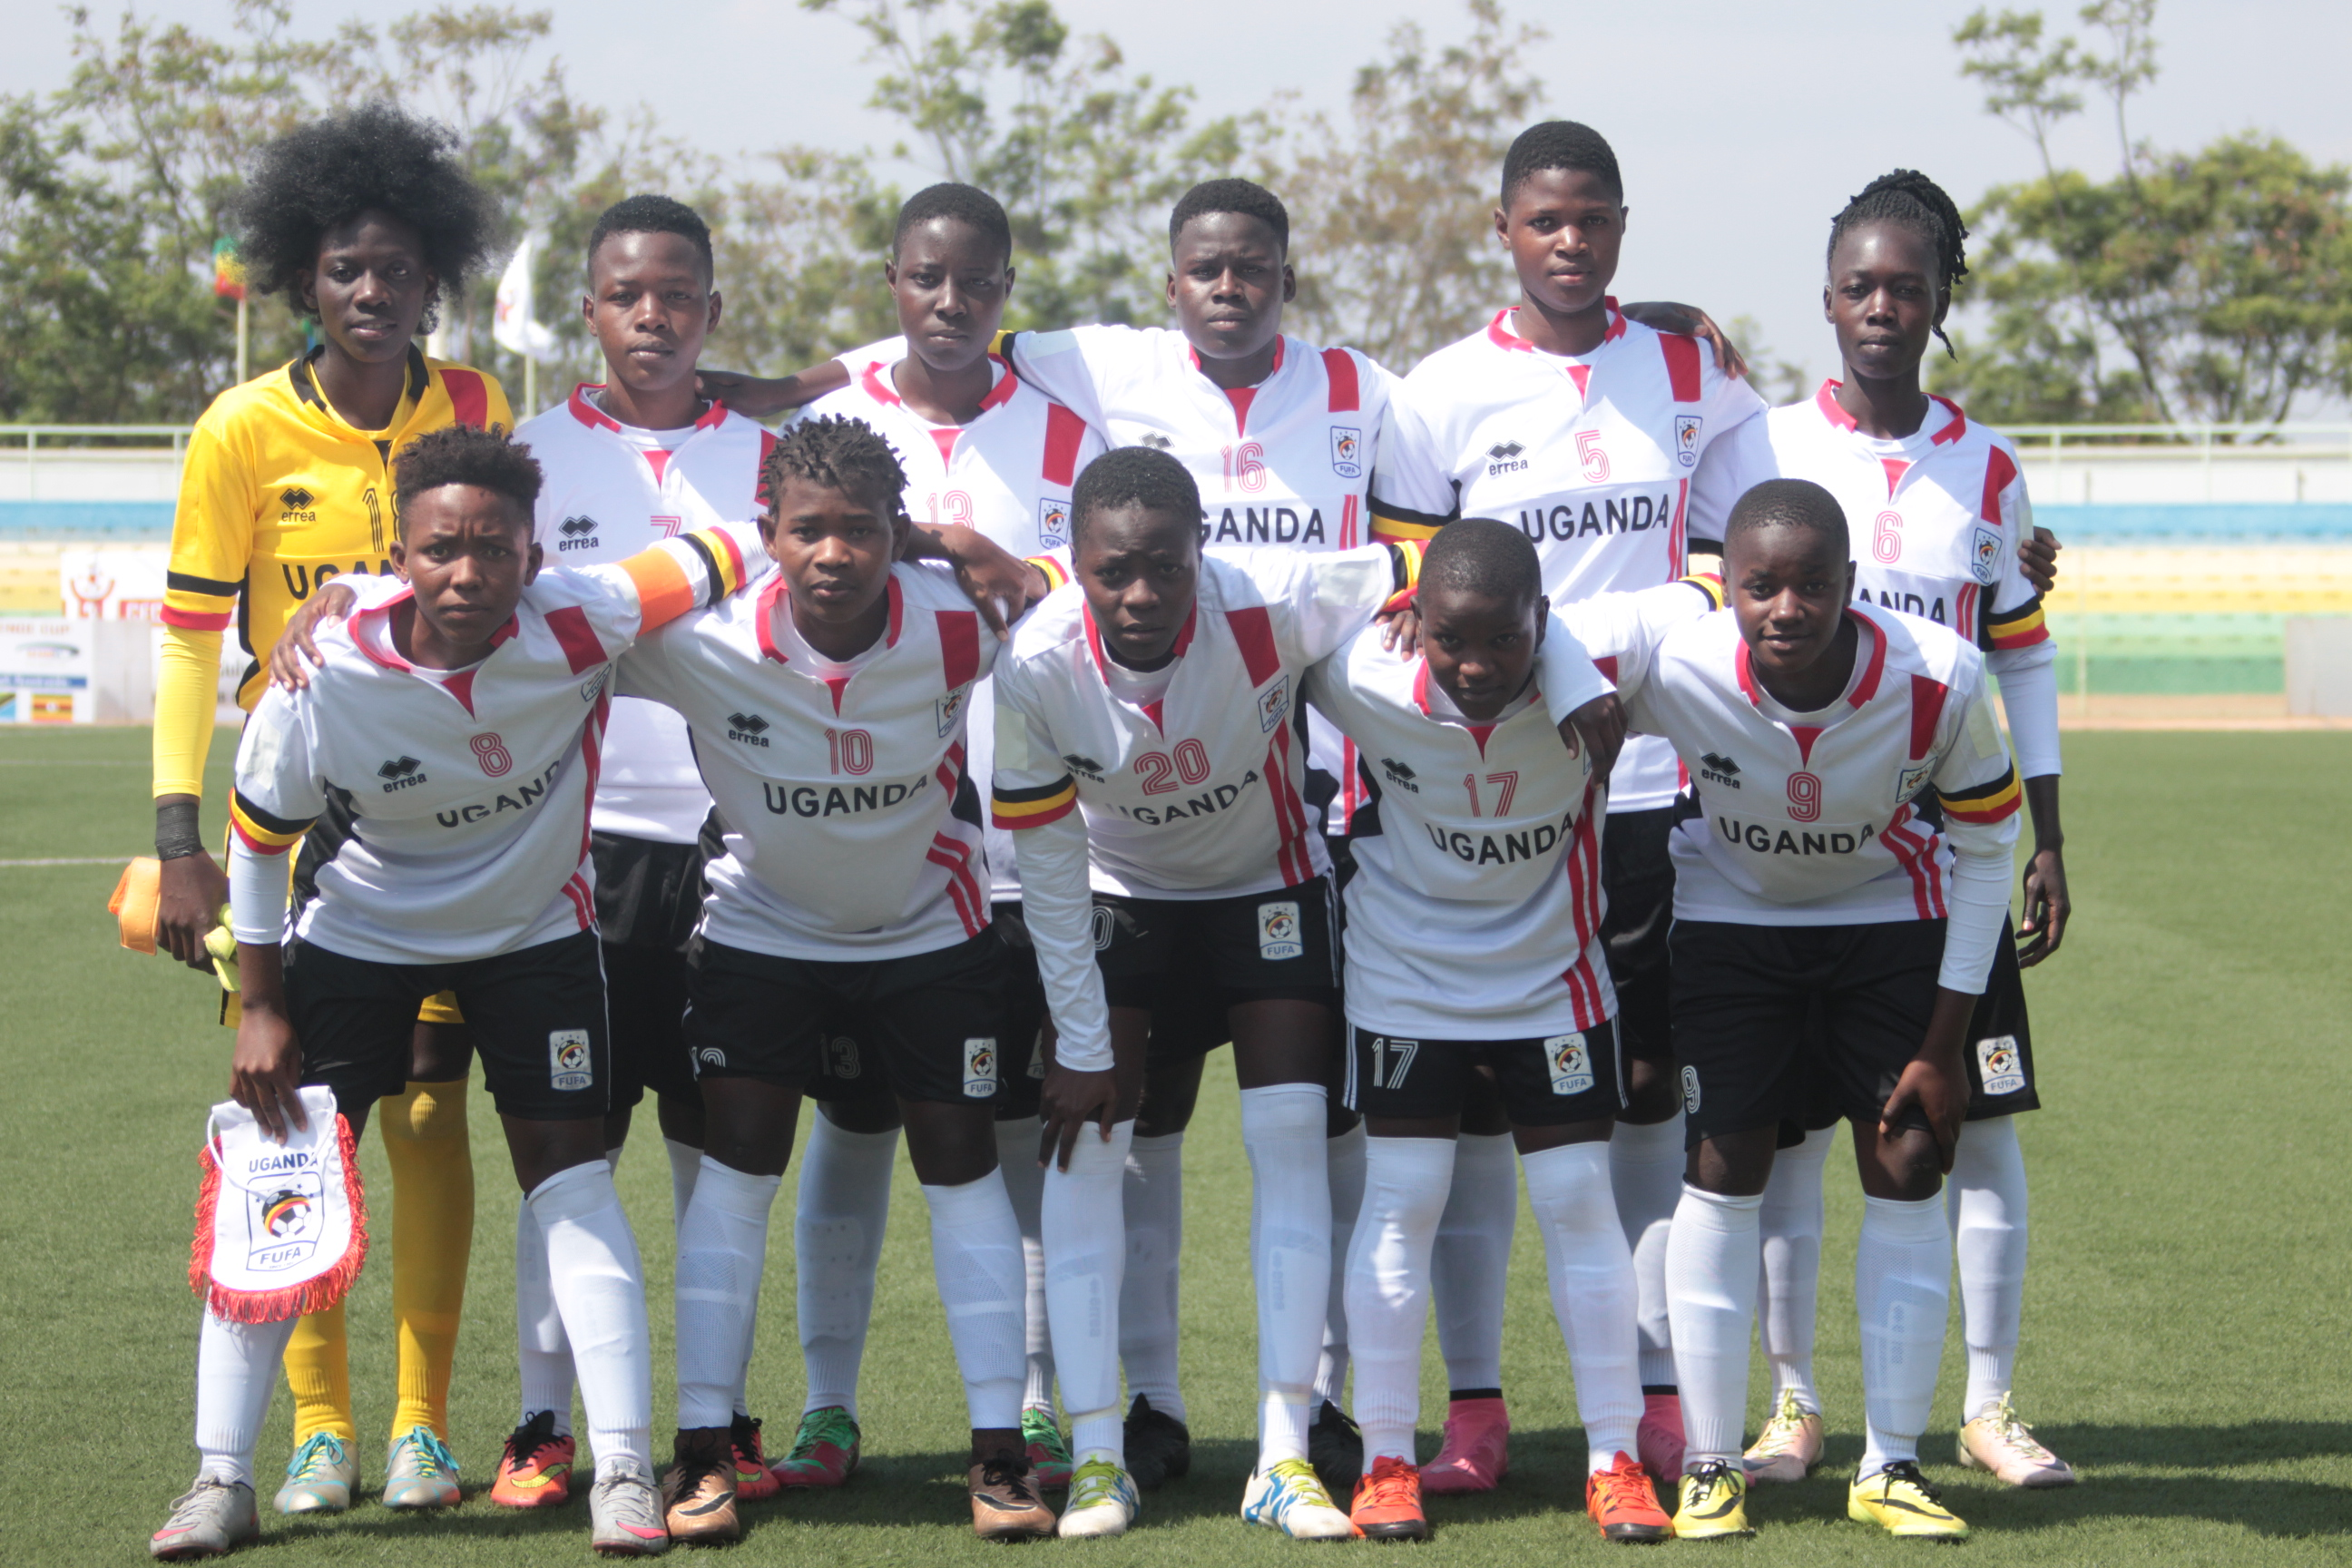 The Crested Cranes have now lost one game in this year's CECAFA Championships (Photo by FUFA Media)